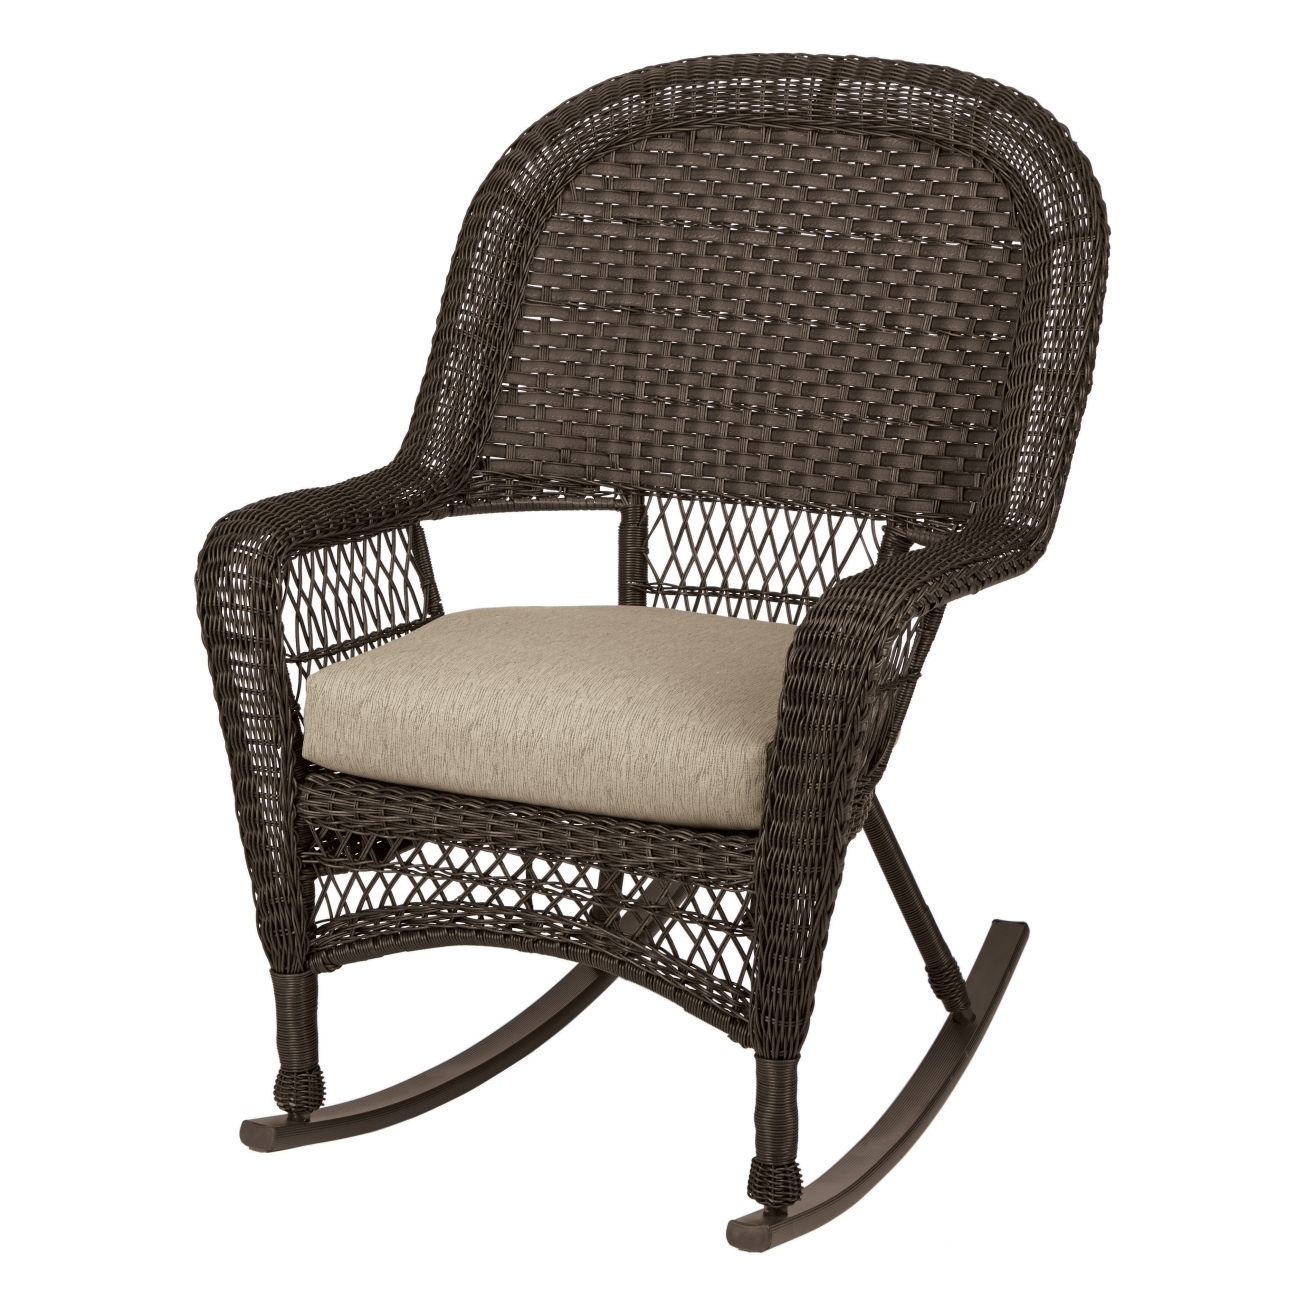 Outdoor Vinyl Rocking Chairs Within 2017 Chair (View 11 of 15)